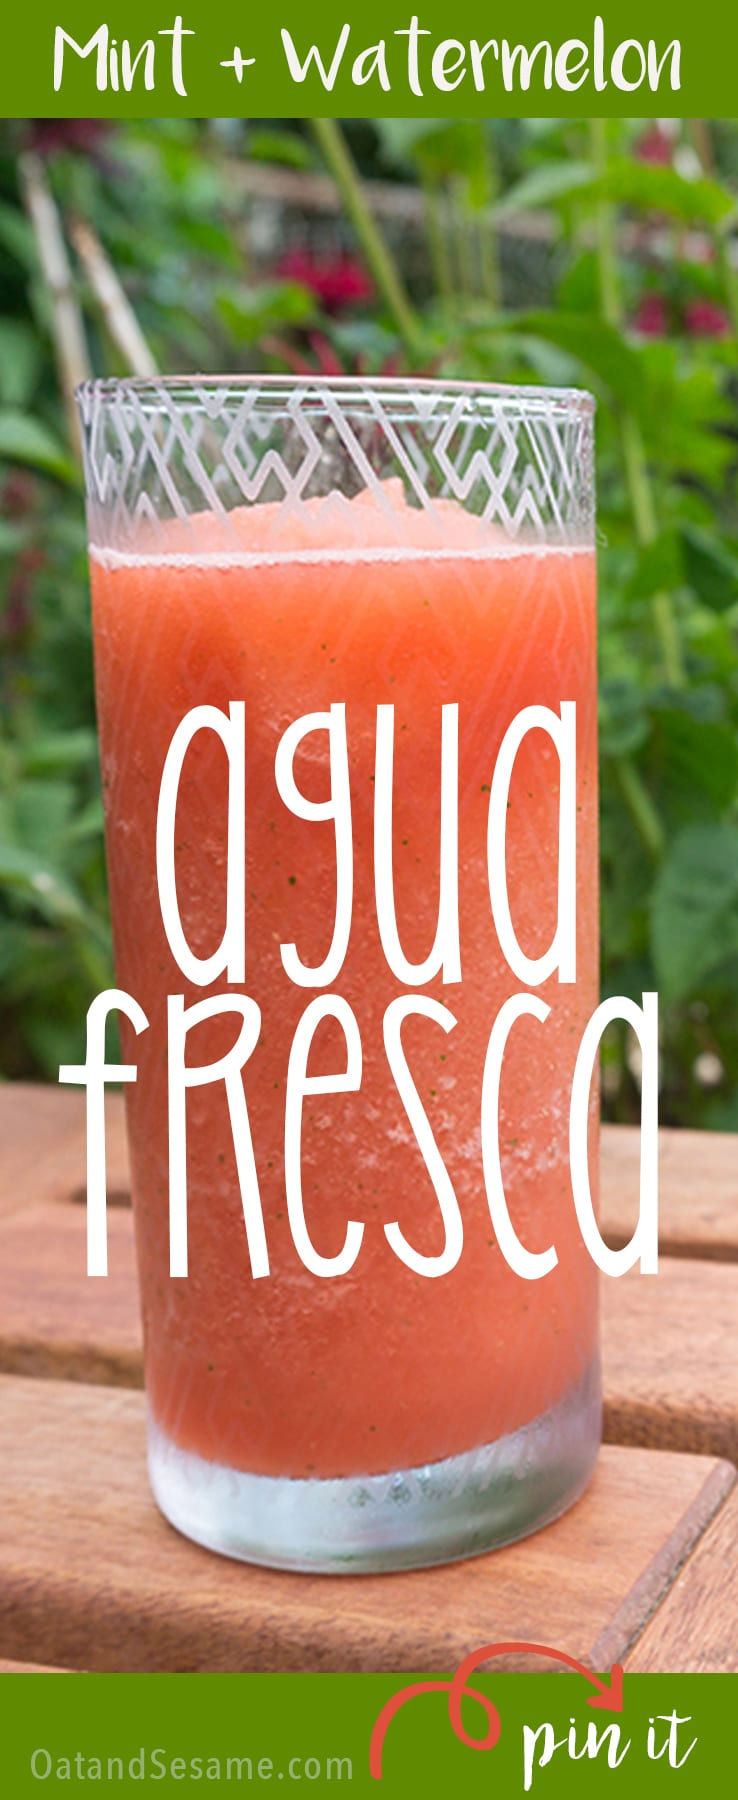 Mint Watermelon Agua Fresca! The BEST Summer Slushie! So refreshing and cold for those hot summer afternoons! | #WATERMELON | #DRINKS | #SUMMER | #SLUSHIE | #Recipes at OatandSesame.com